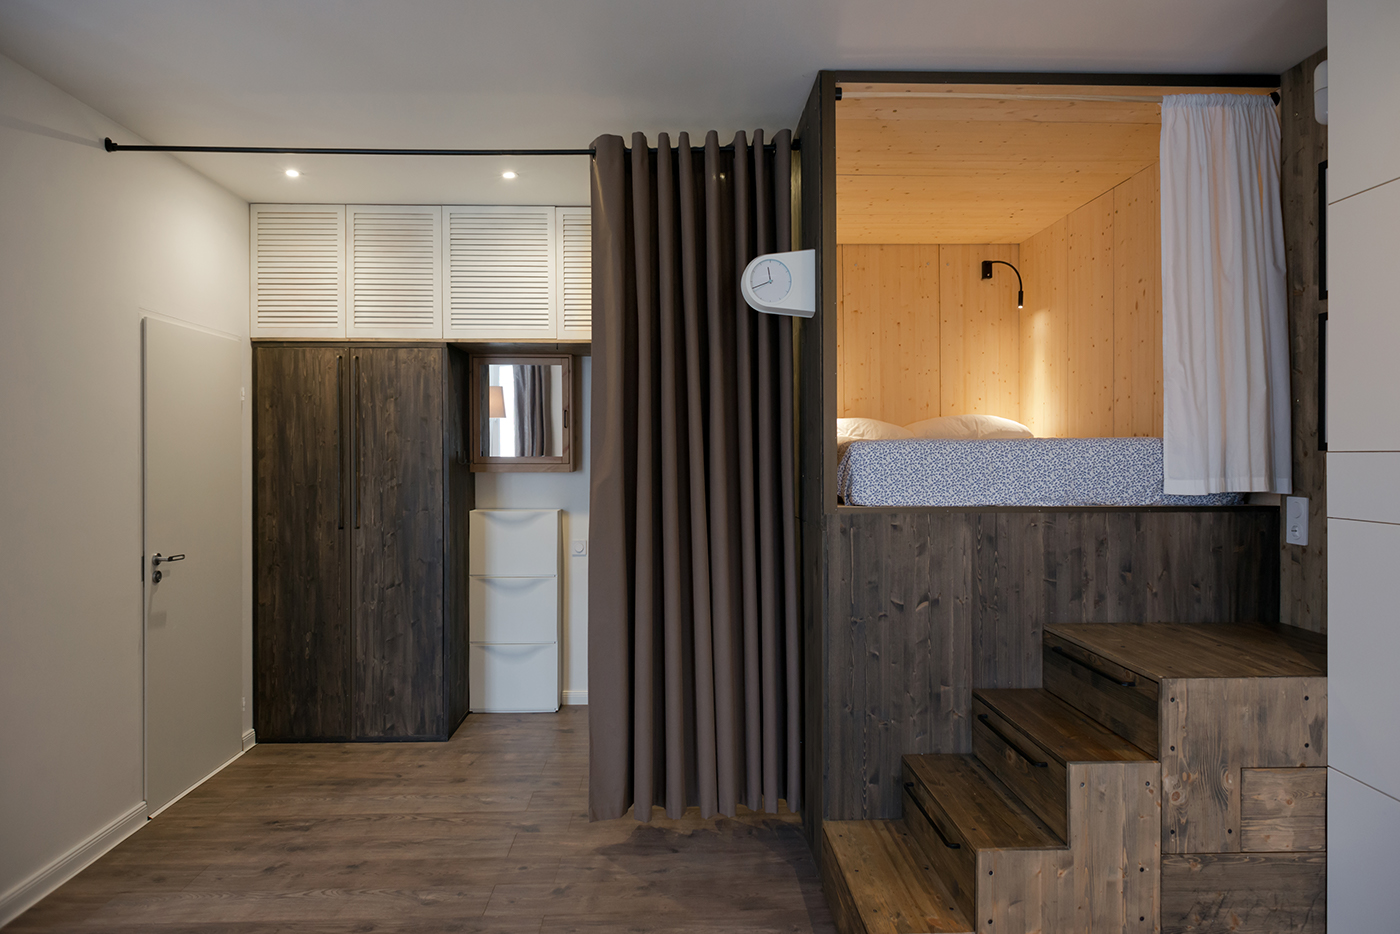 Studio Bazi Creates Sleeping Box for Minimalist Apartment in Moscow minimalist apartment Studio Bazi Creates Sleeping Box for Minimalist Apartment in Moscow Studio Bazi Creates Wooden Sleeping Box for Apartment in Moscow 7